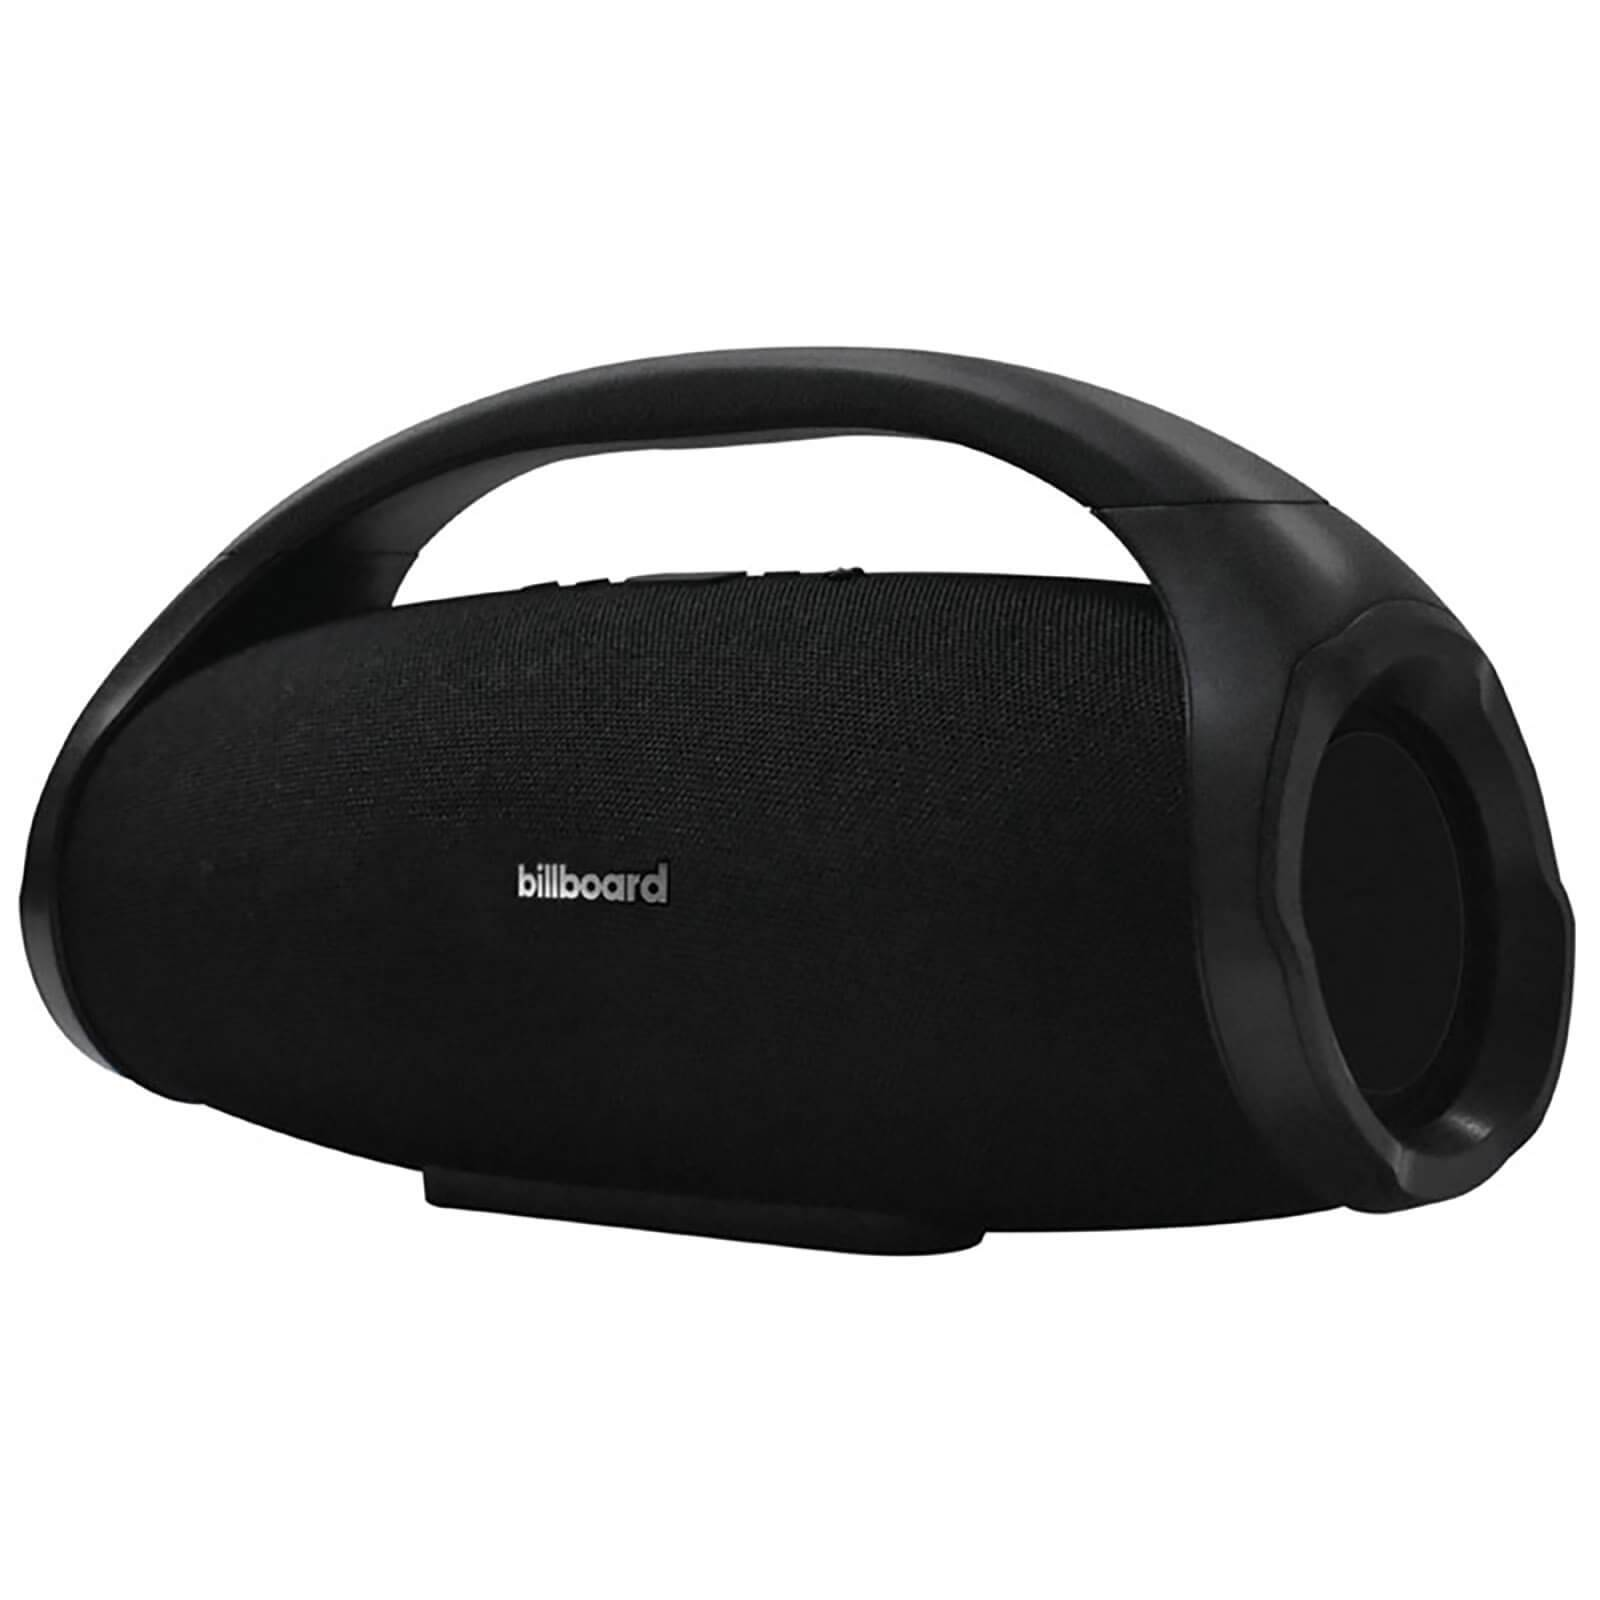 Billboard Portable Wireless Bluetooth Boom Box-